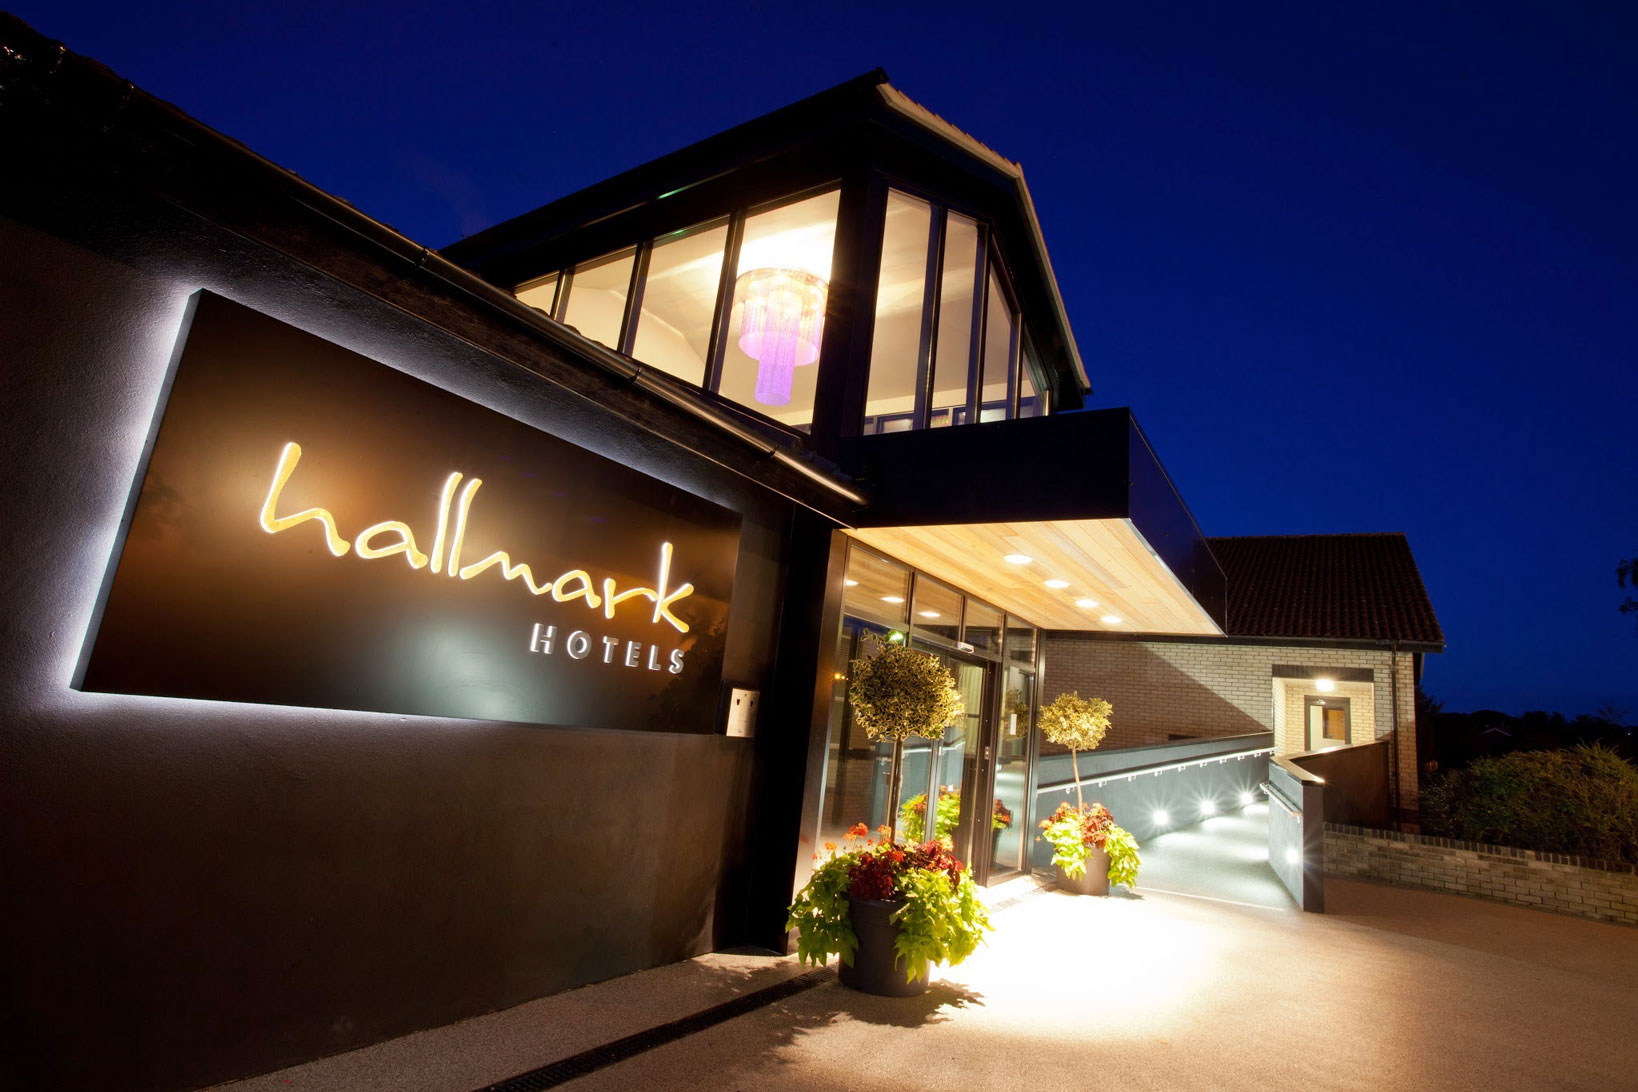 GEM's gain an insight into the Hospitality sector with a tour of the Hallmark Hotel